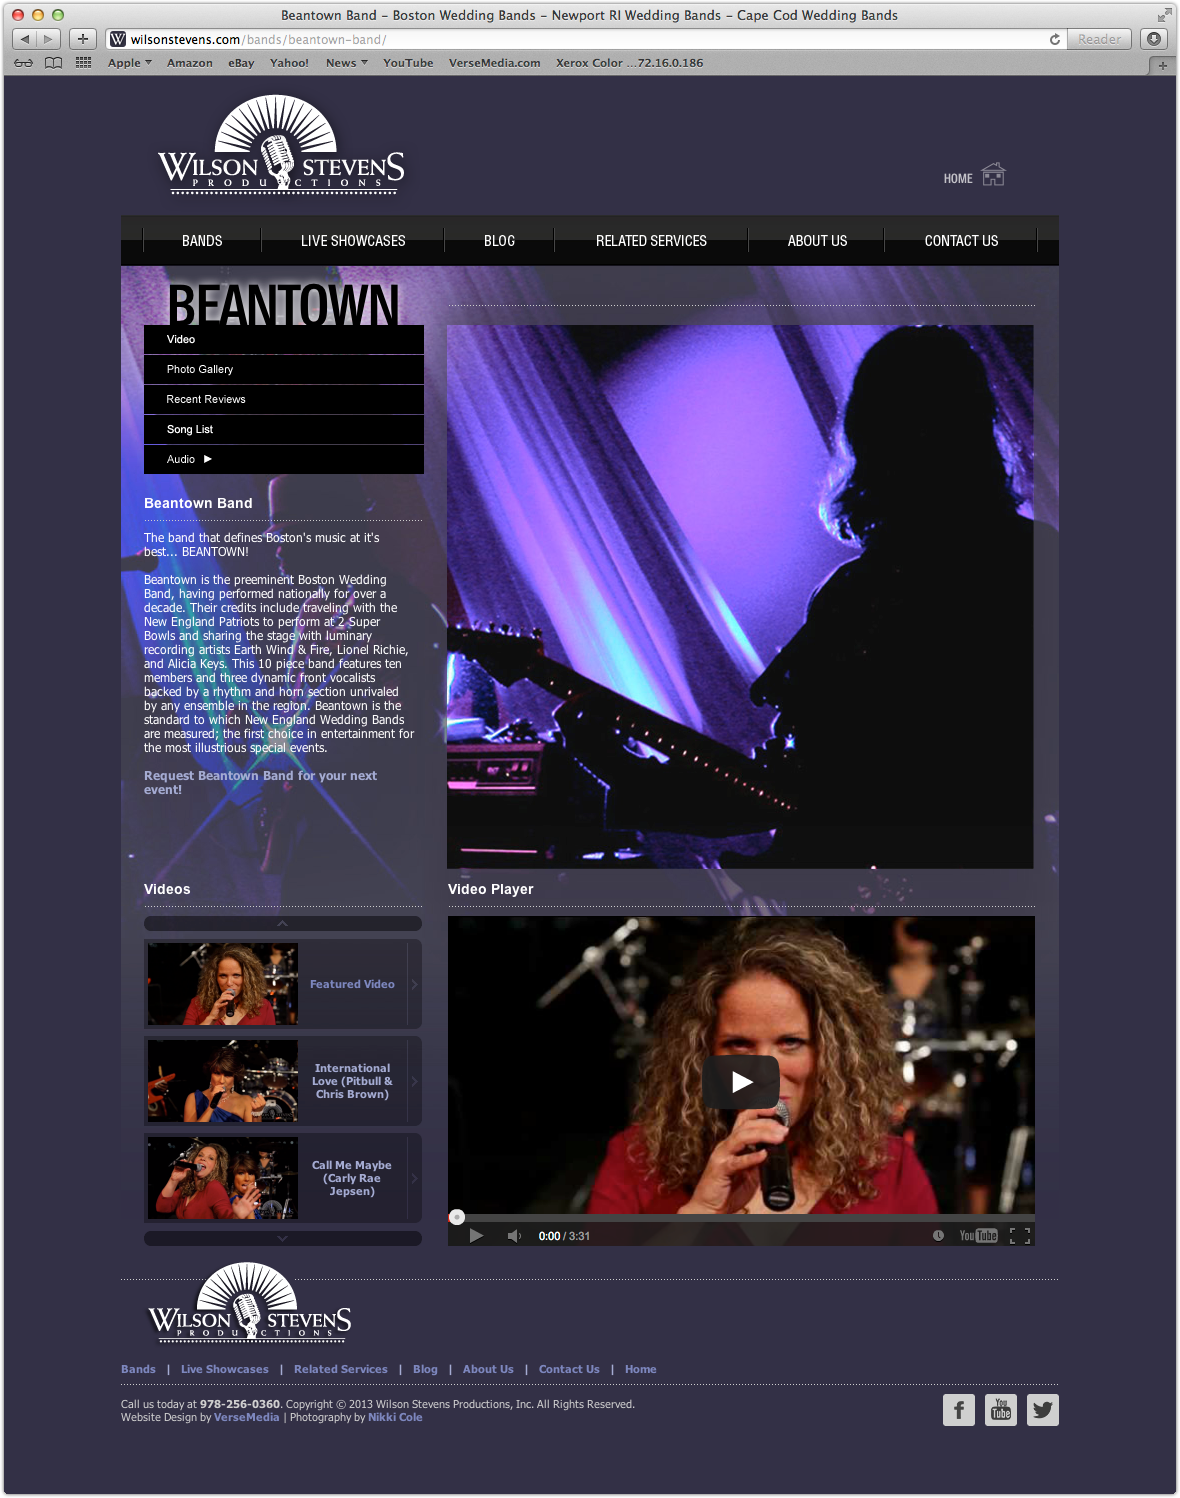 Beantown Band Page